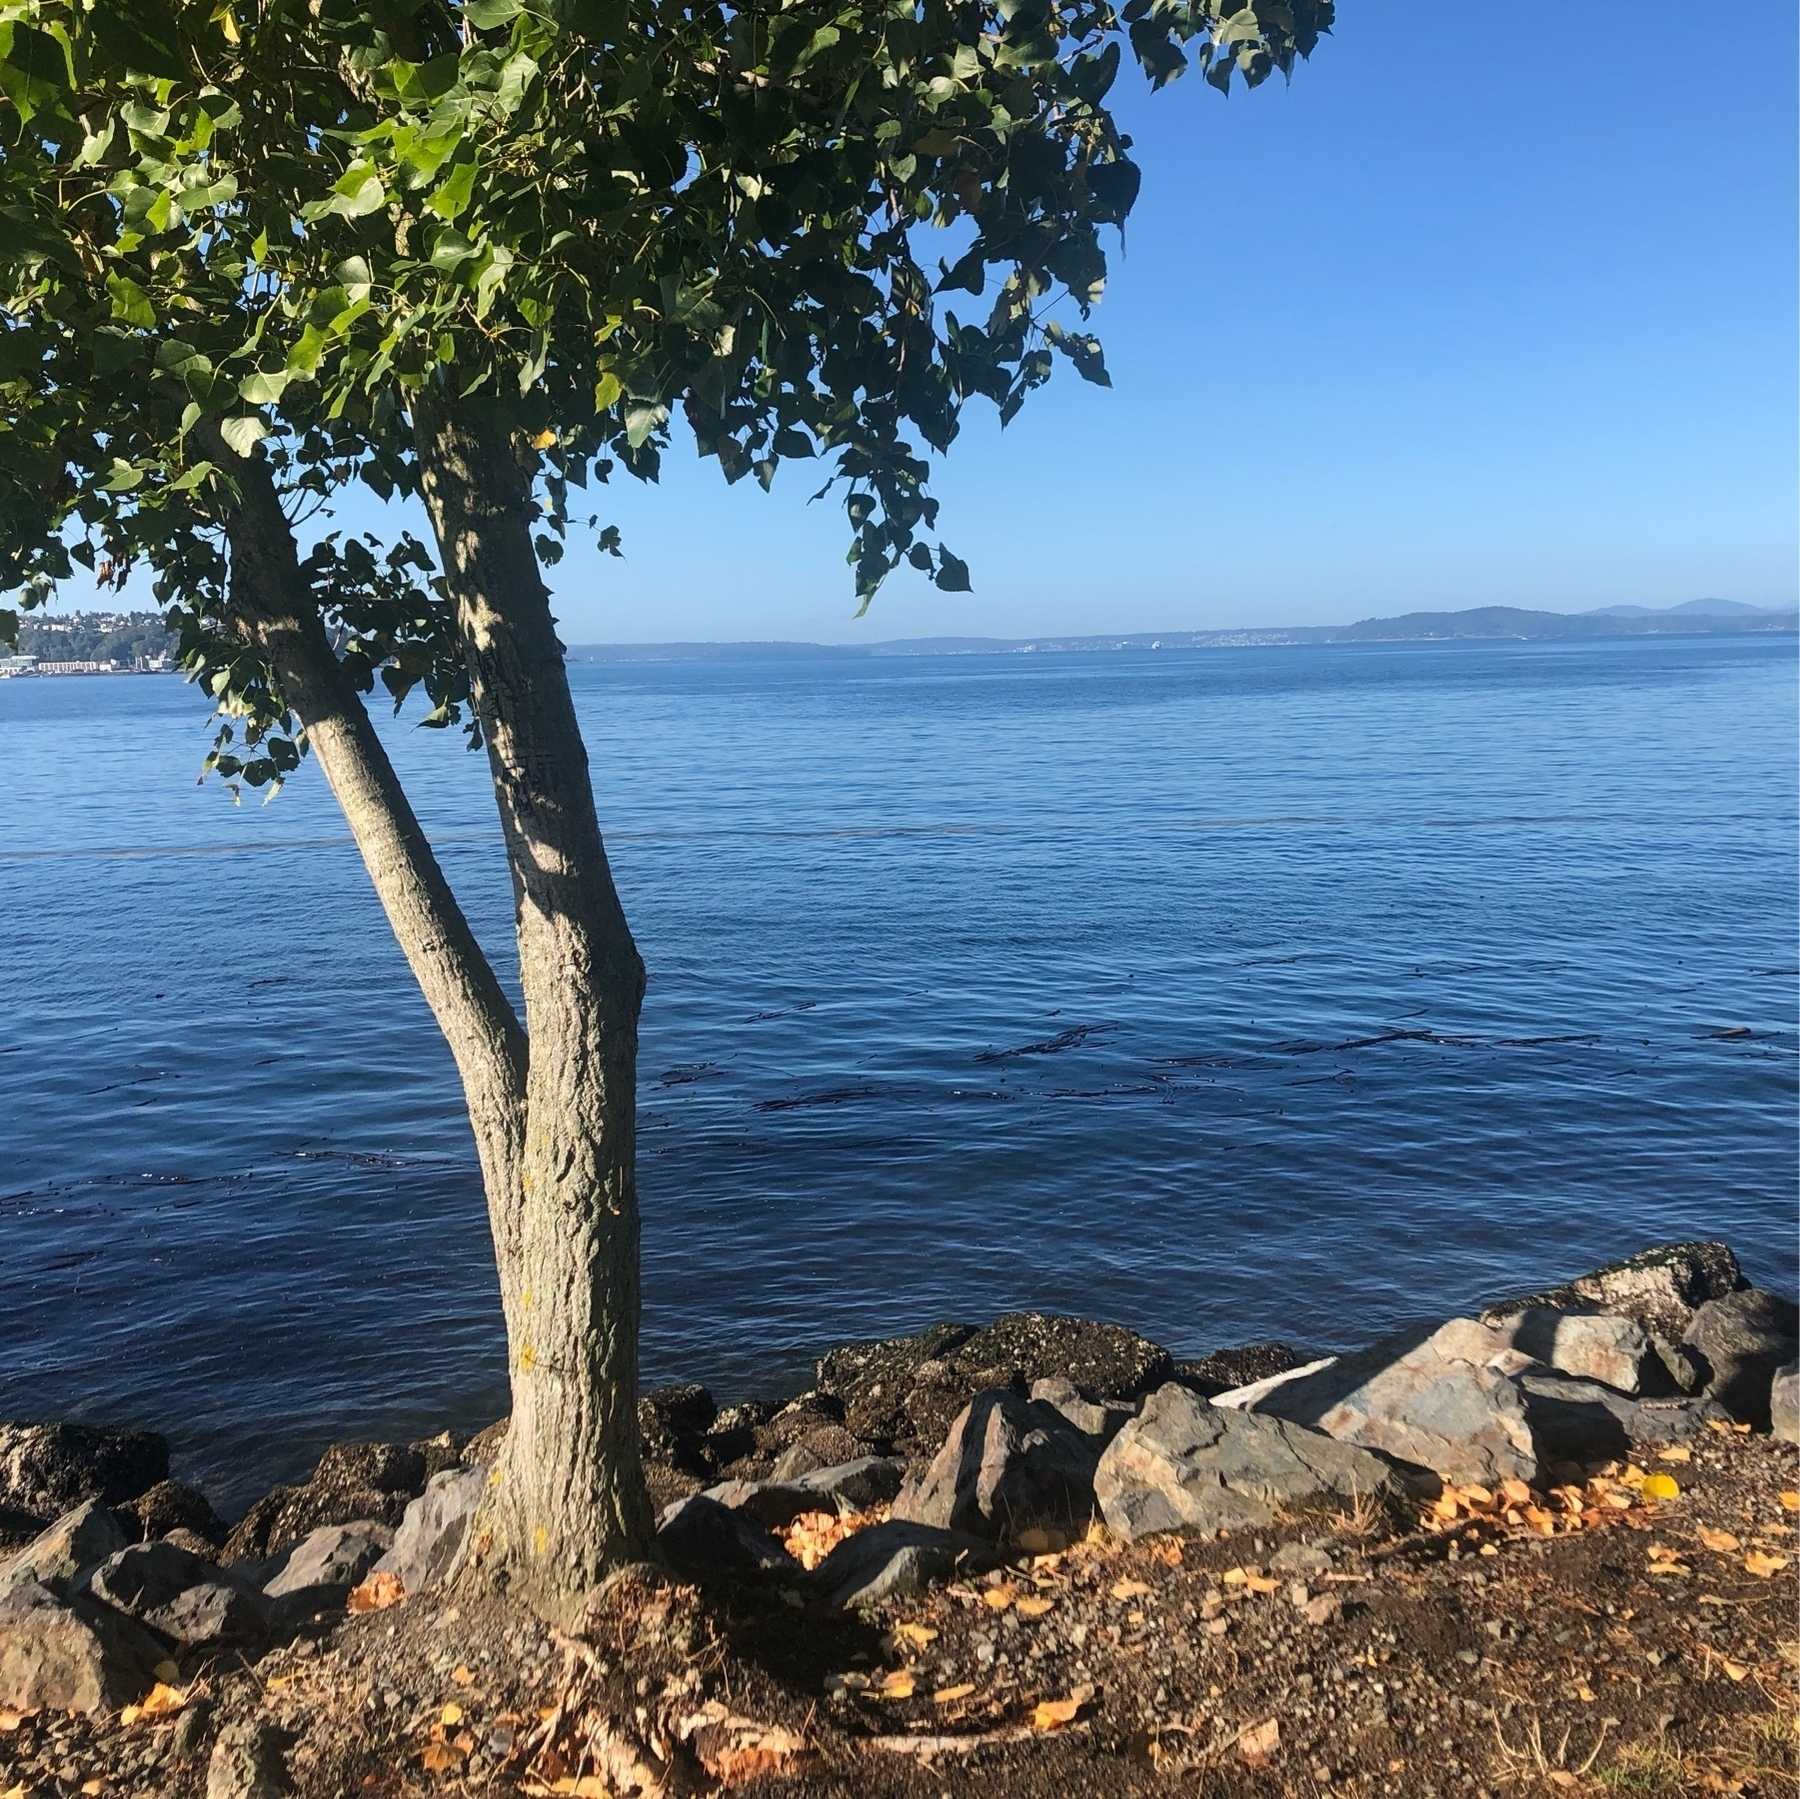 A beautiful azure bay with a tree in the foreground. A few leaves scatter the yellowish grass.